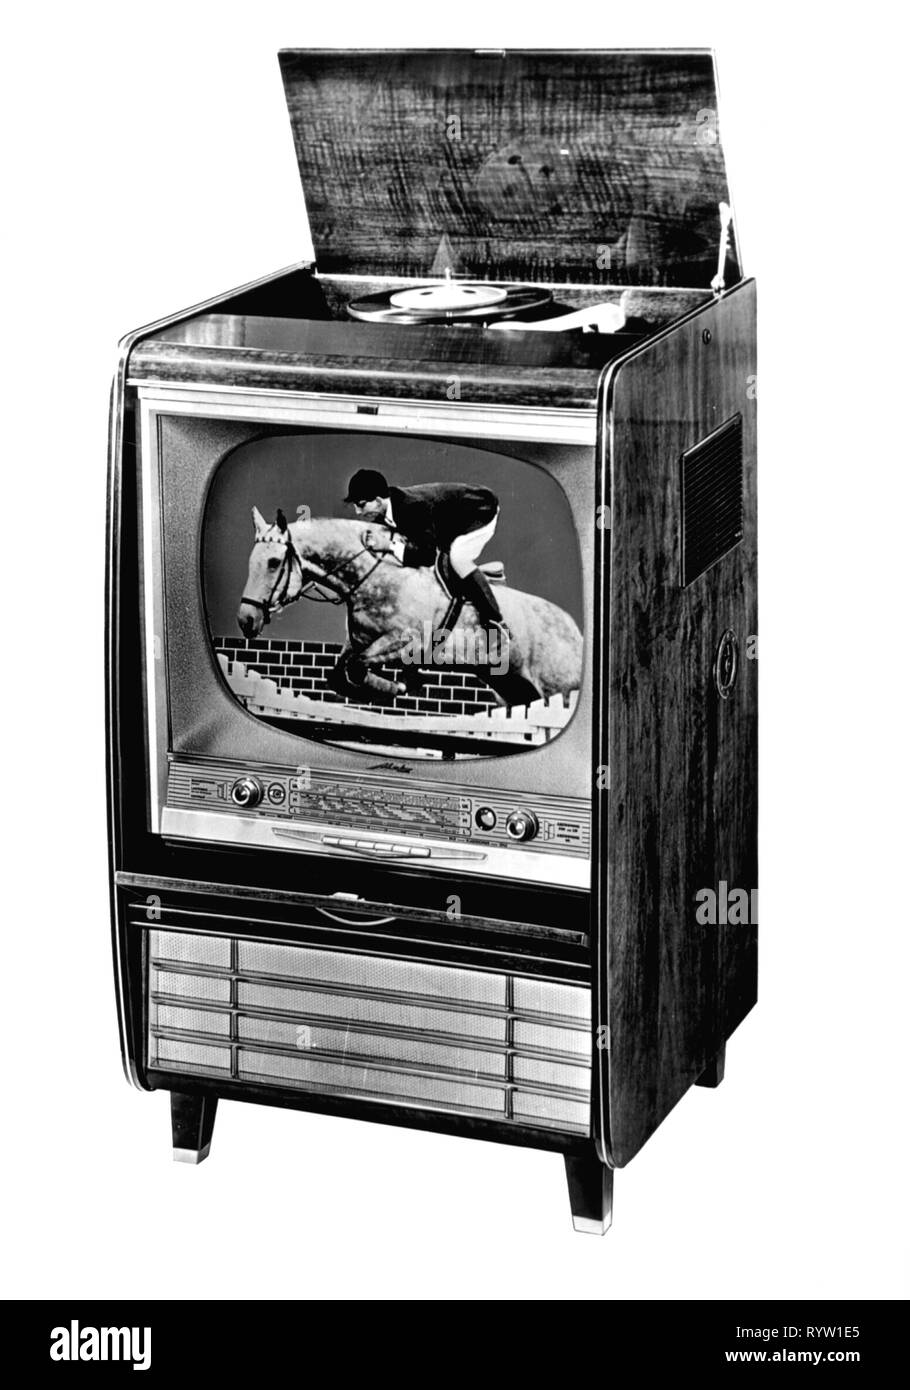 broadcast, television, television set Metz 1072, combined with record player and radio, Germany, 1958, telecast, telecasts, sports, riding, showjumping, telecommunications, telecommunication, consumer electronics, entertainment electronics, telecom, technics, industry, industries, Germany, 20th century, 1950s, television set, TV set, TV, television sets, TV sets, TVs, combining, combinating, combine, combinate, record player, record players, radio, radios, historic, historical, Additional-Rights-Clearance-Info-Not-Available - Stock Image